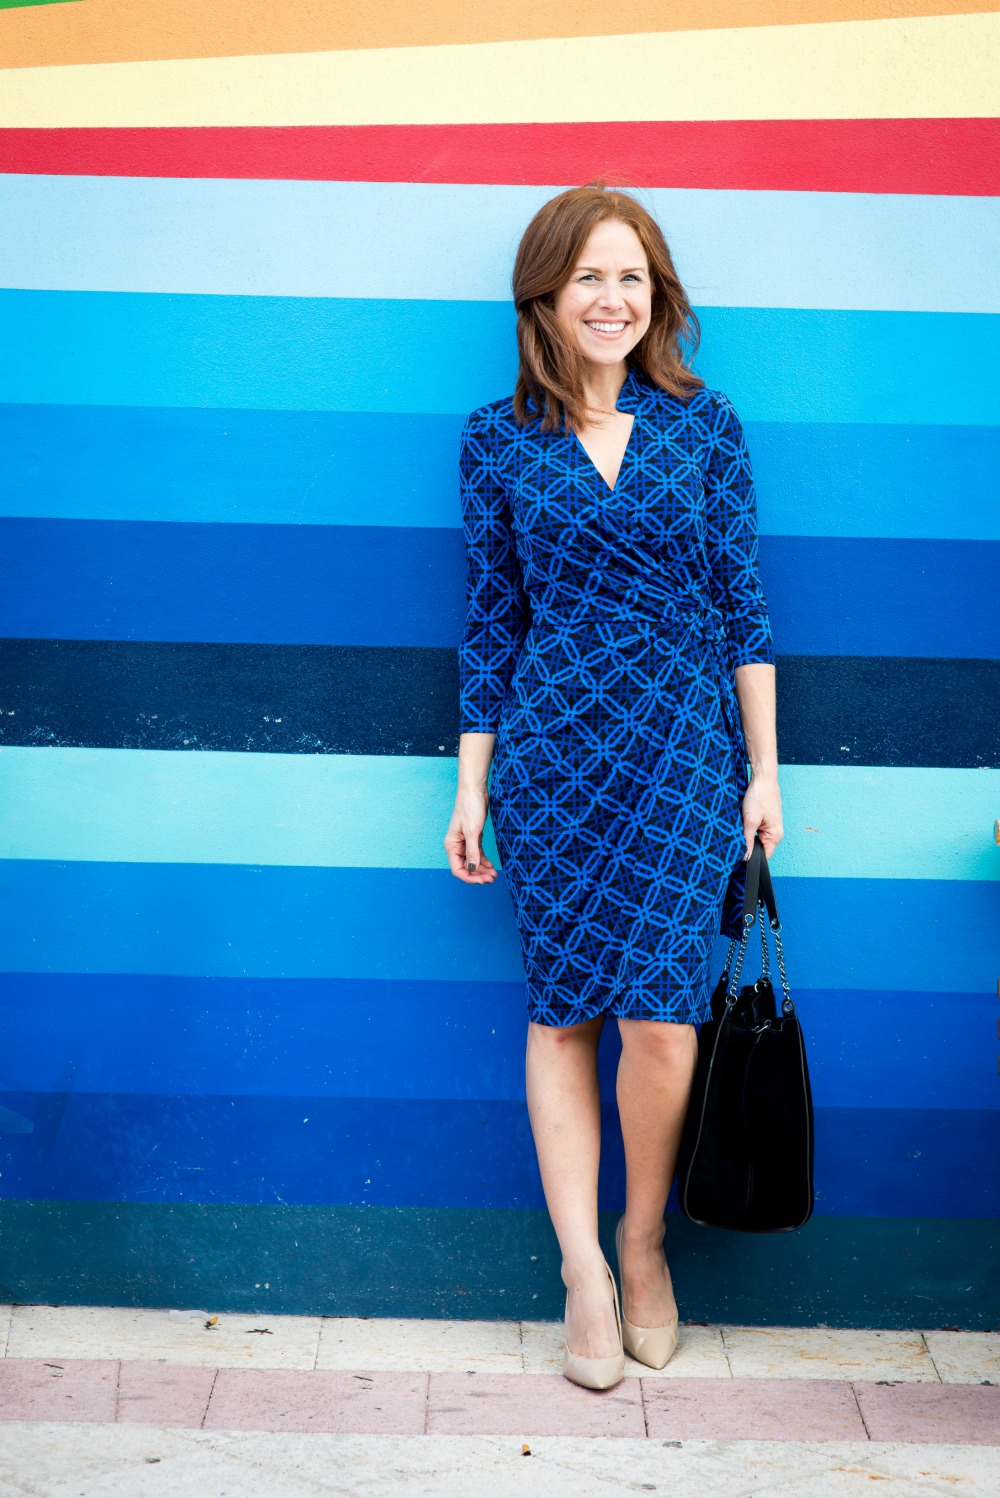 Blue on blue! Striped wall accents a chic wrap dress on 30-something blogger Alyson // the modern savvy, a life & style blog